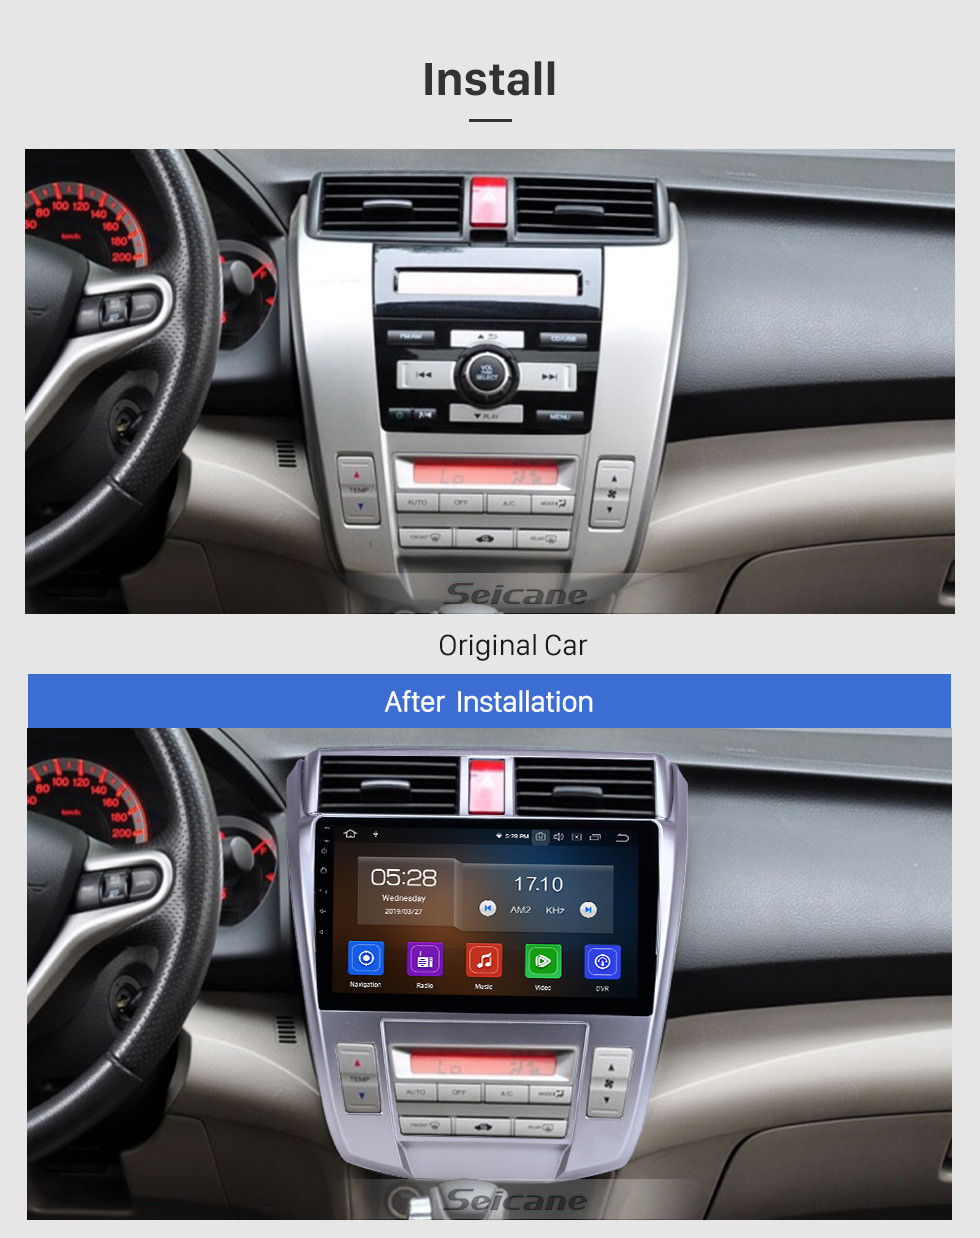 Seicane HD Touchscreen 2008-2013 Honda City Auto A/C Android 10.0 10.1 inch GPS Navigation Radio Bluetooth AUX Carplay support Rear camera